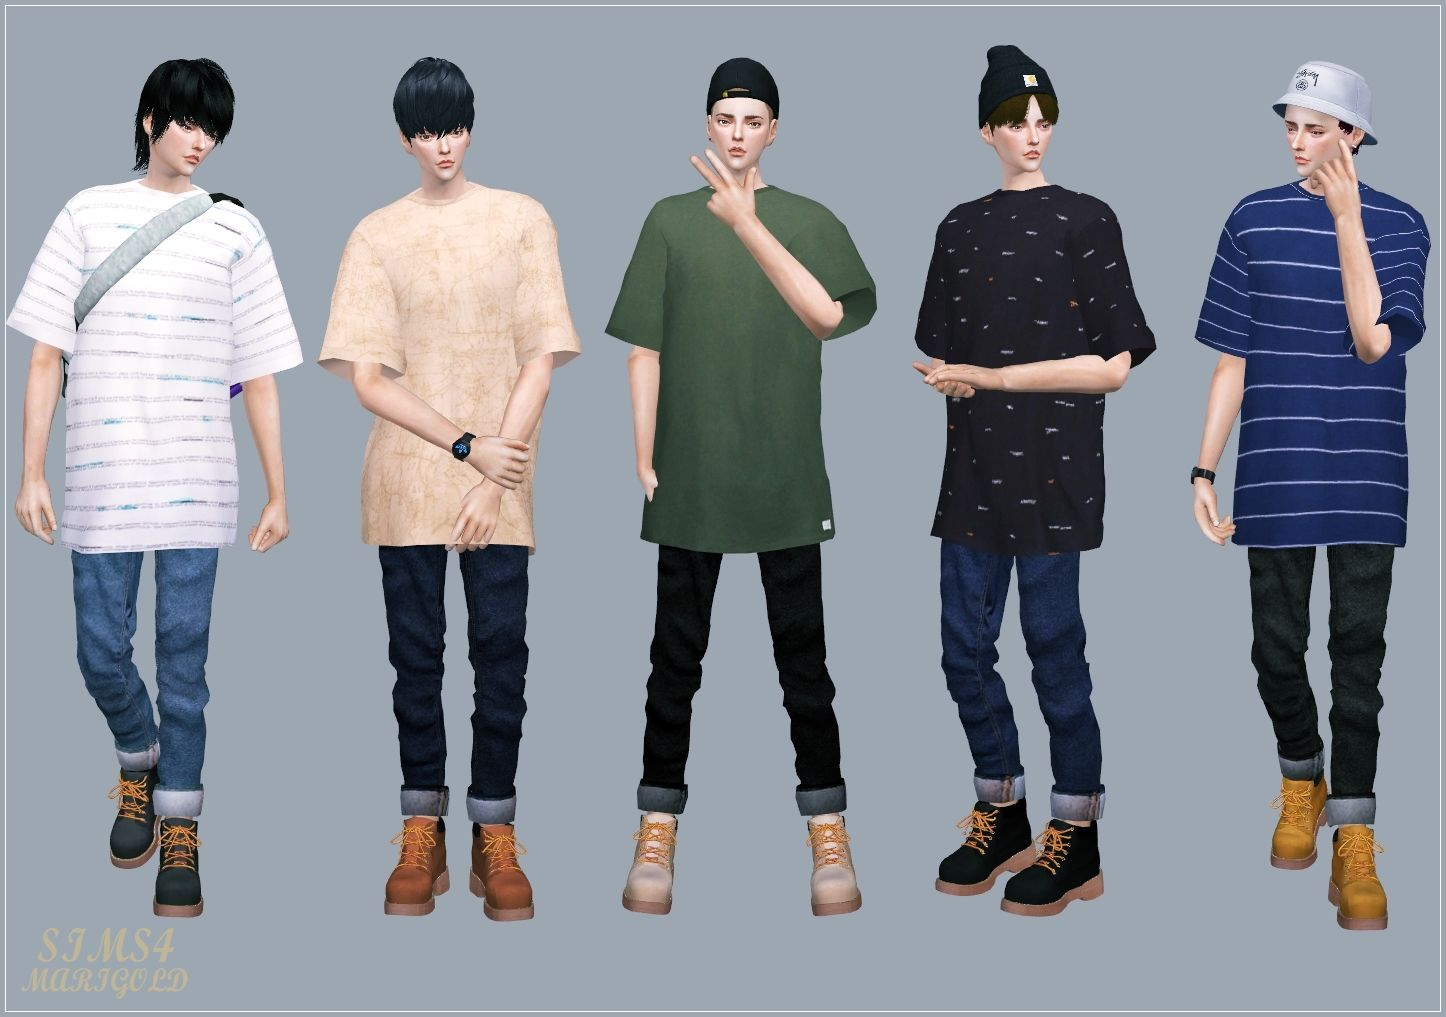 T Shirts, Jeans and Boots for Males by Marigold | Sims4